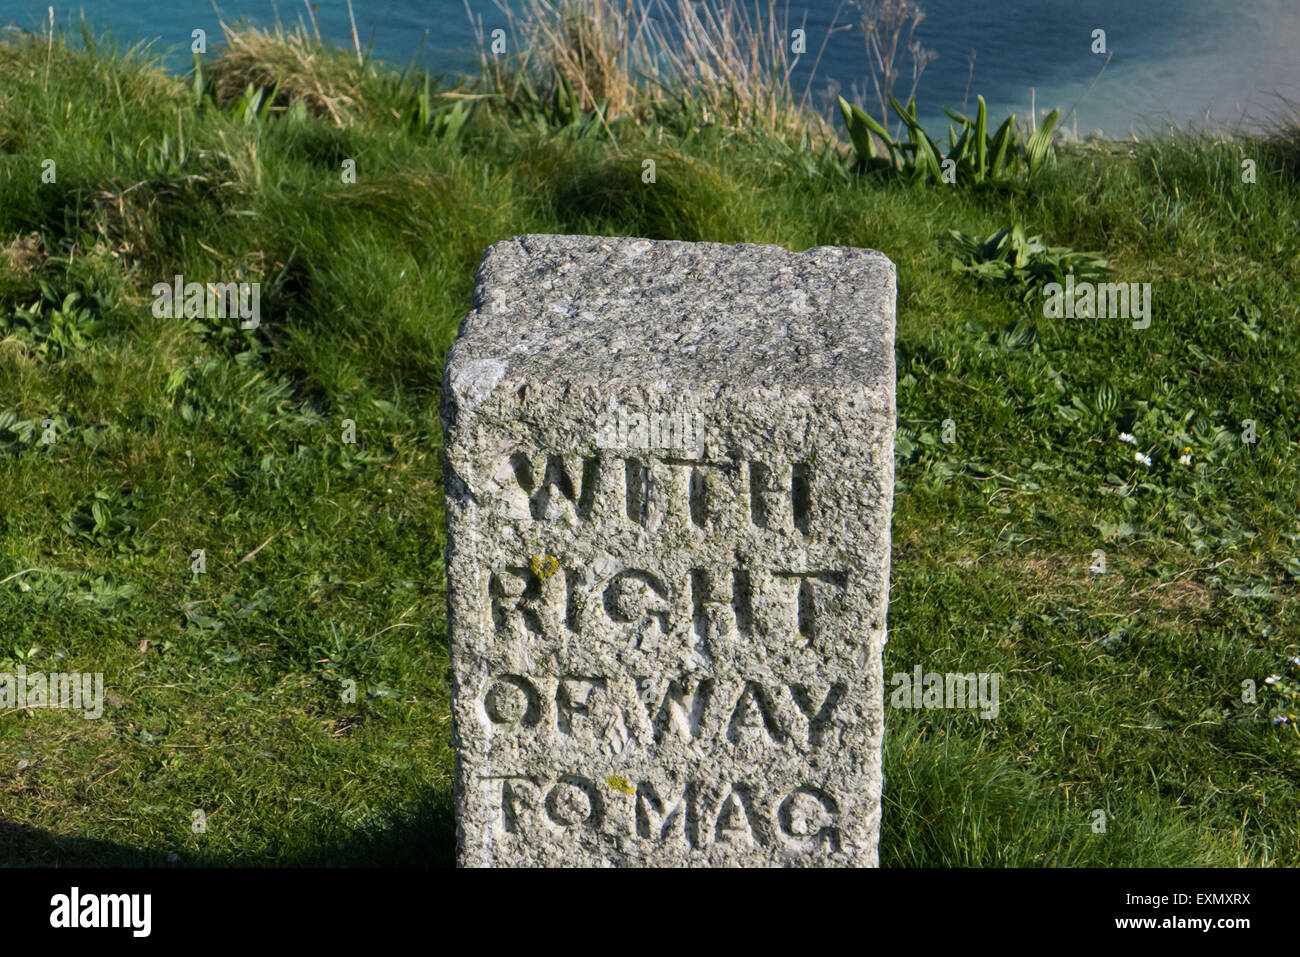 St Ives, Cornwall, England. Right of Way stone marker. - Stock Image